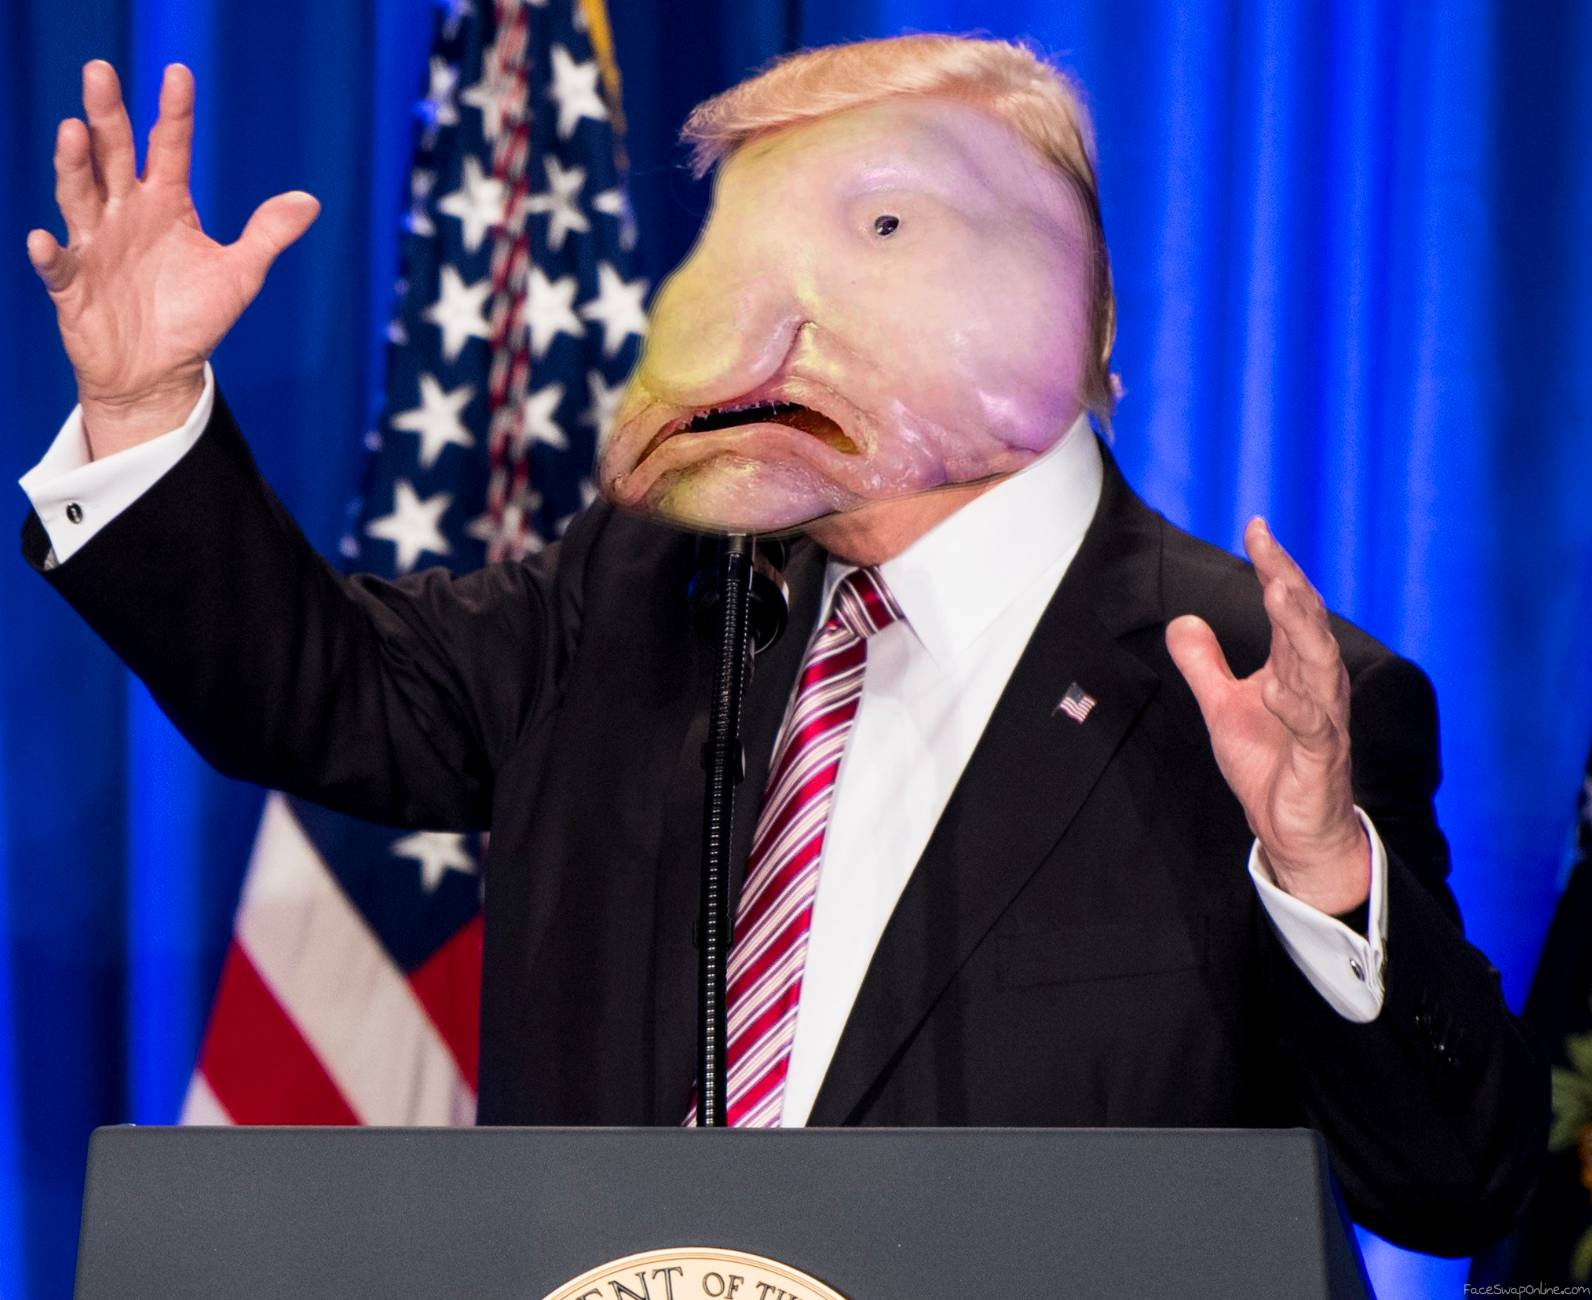 Blobfish Trump (no offence)